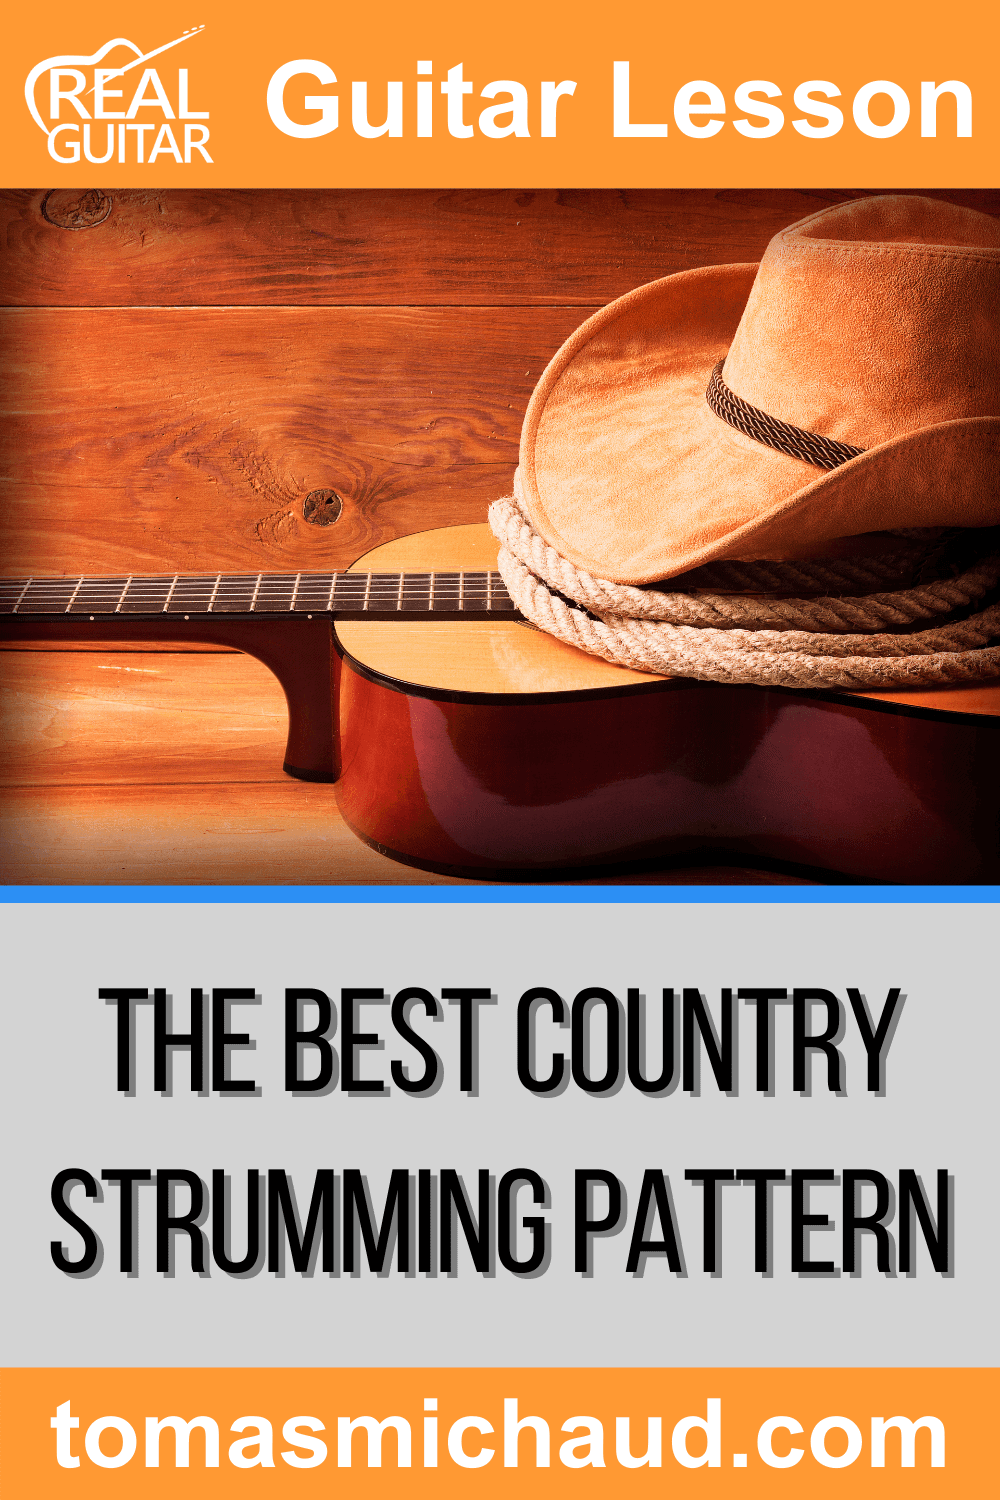 The Best Country Strumming Pattern